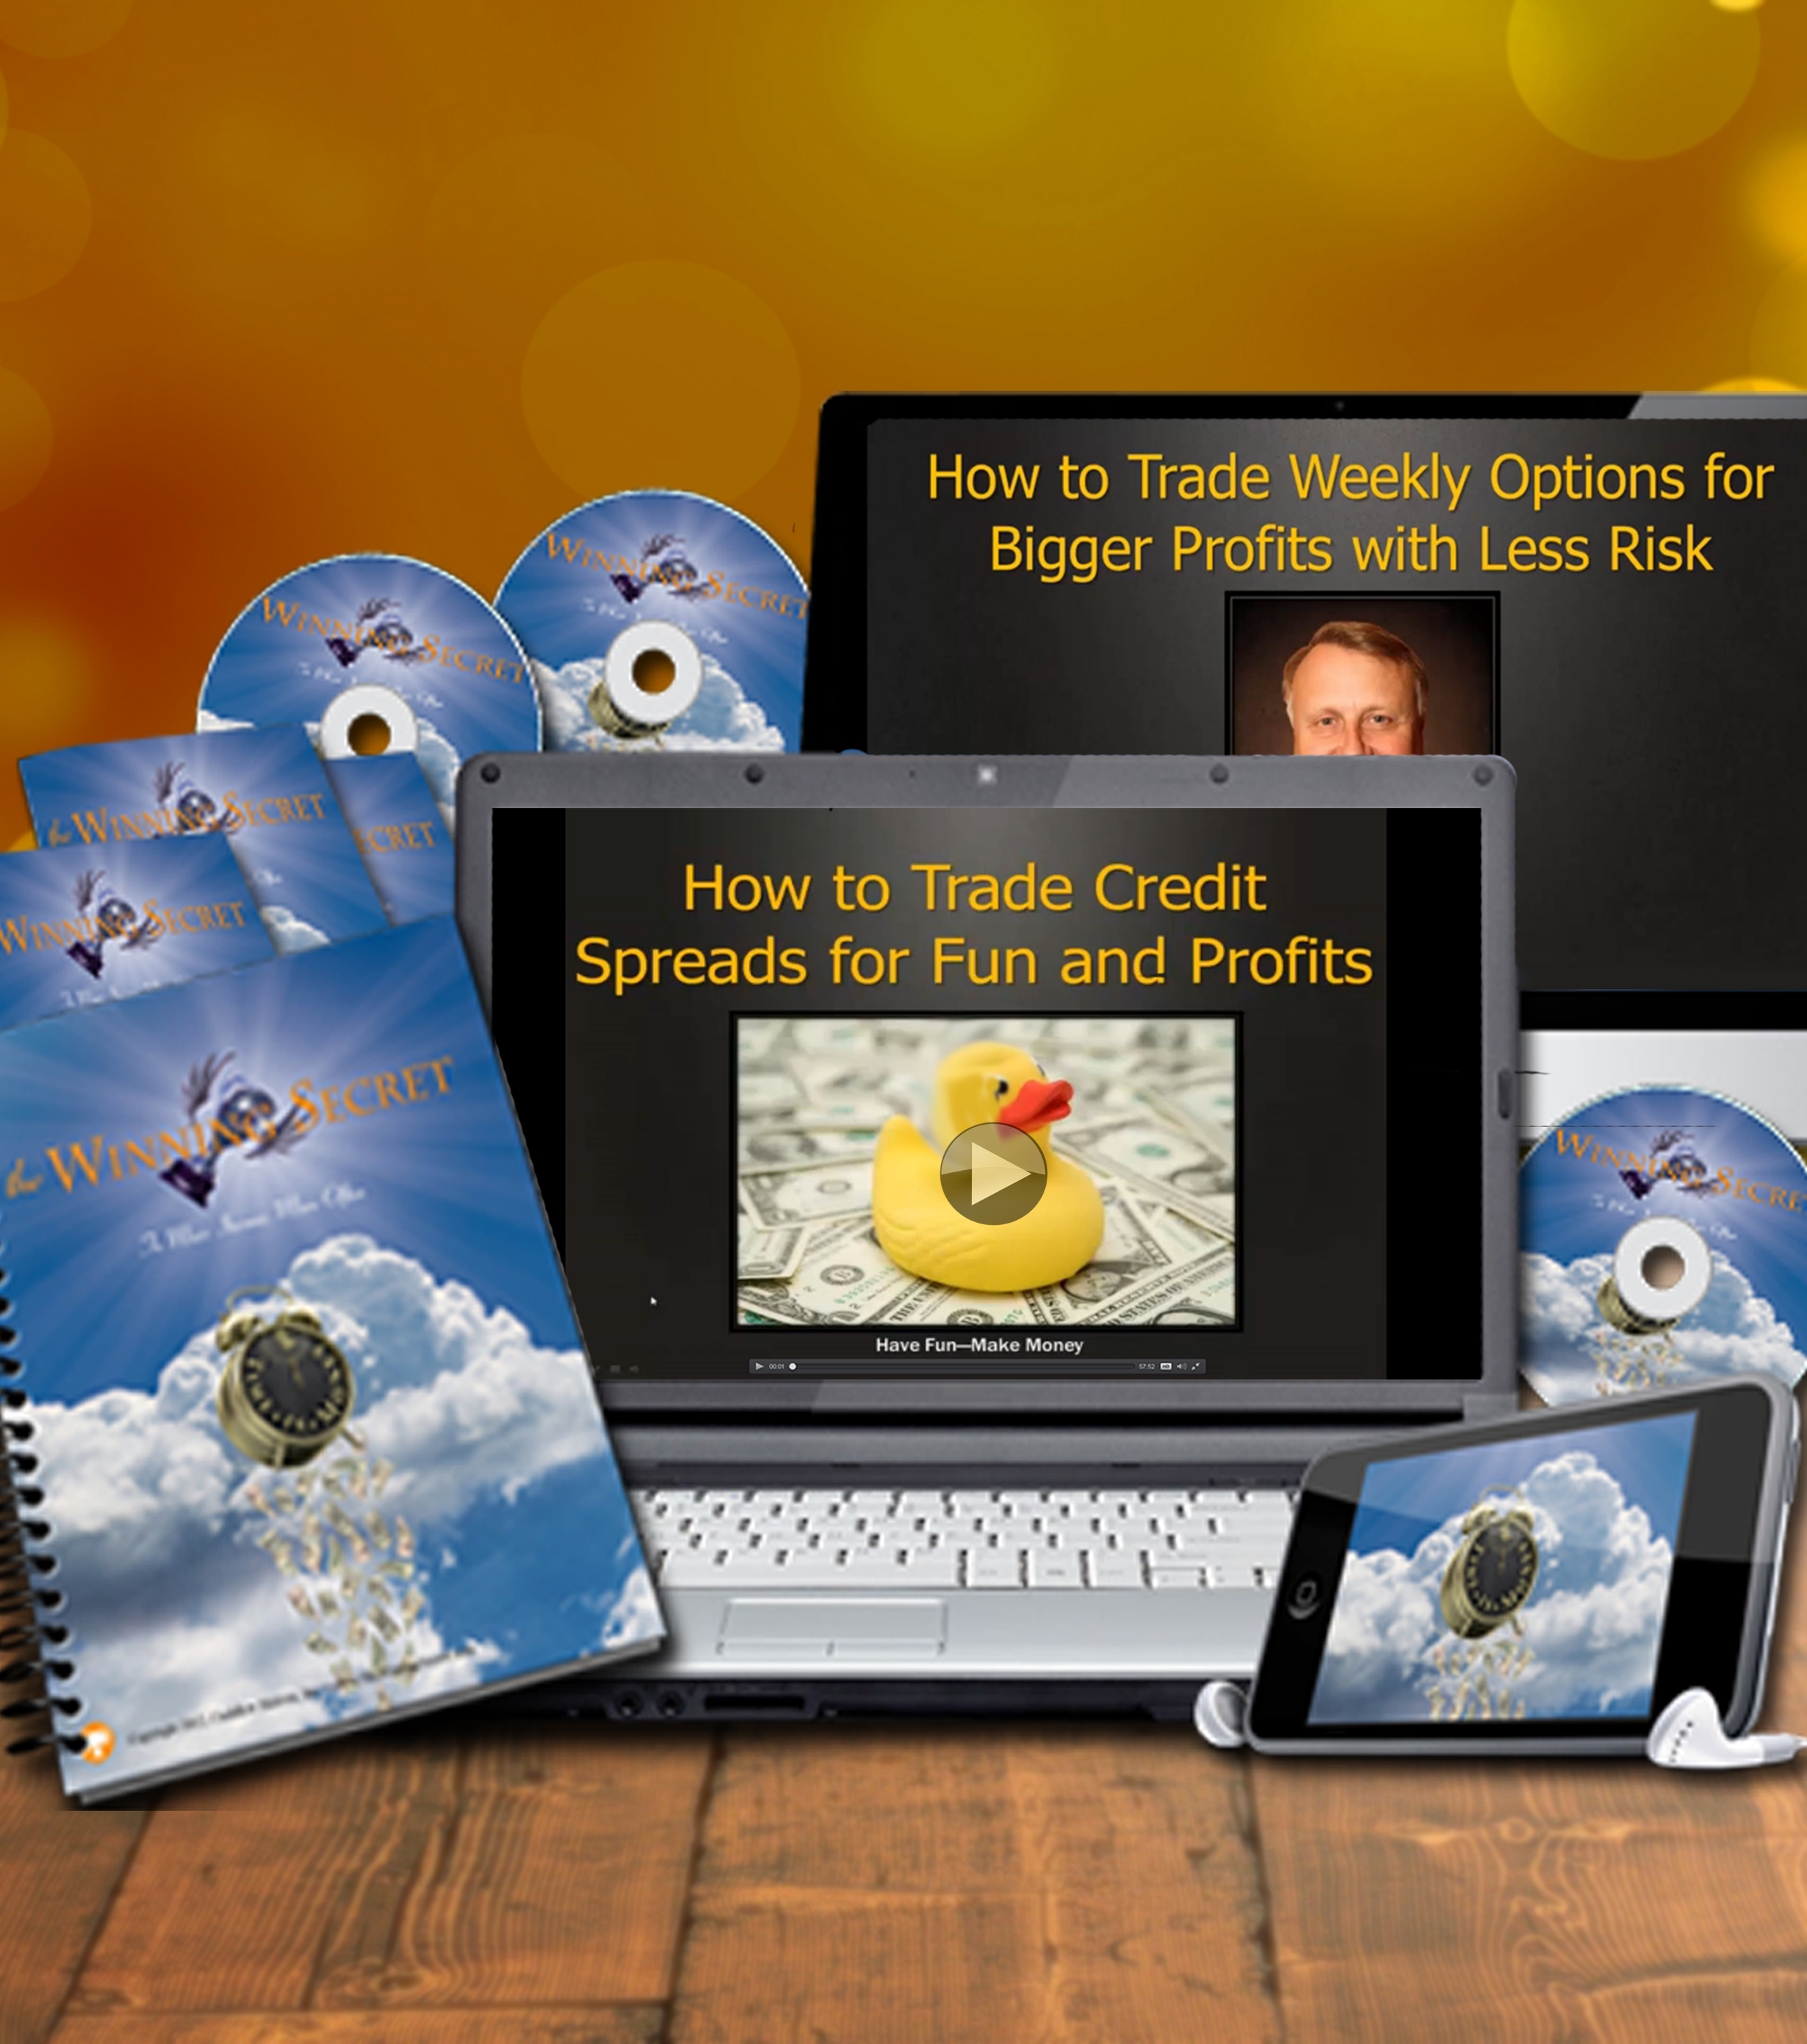 The Winning Secret Course: Get the Tools You Need to Start Profitably and Stay that Way